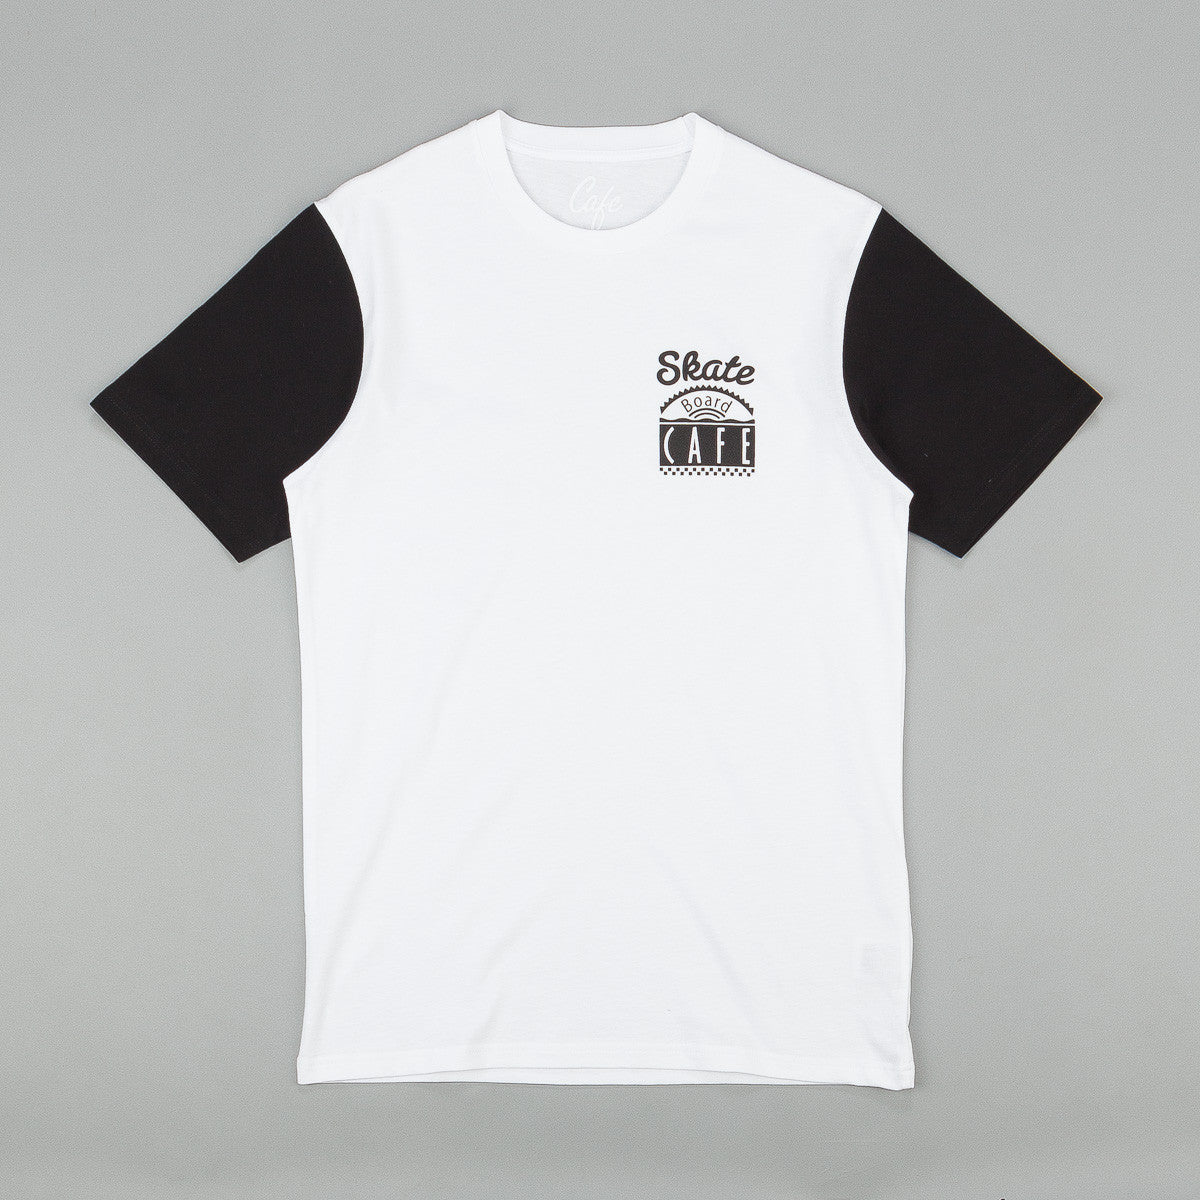 Skateboard Cafe Split T-Shirt